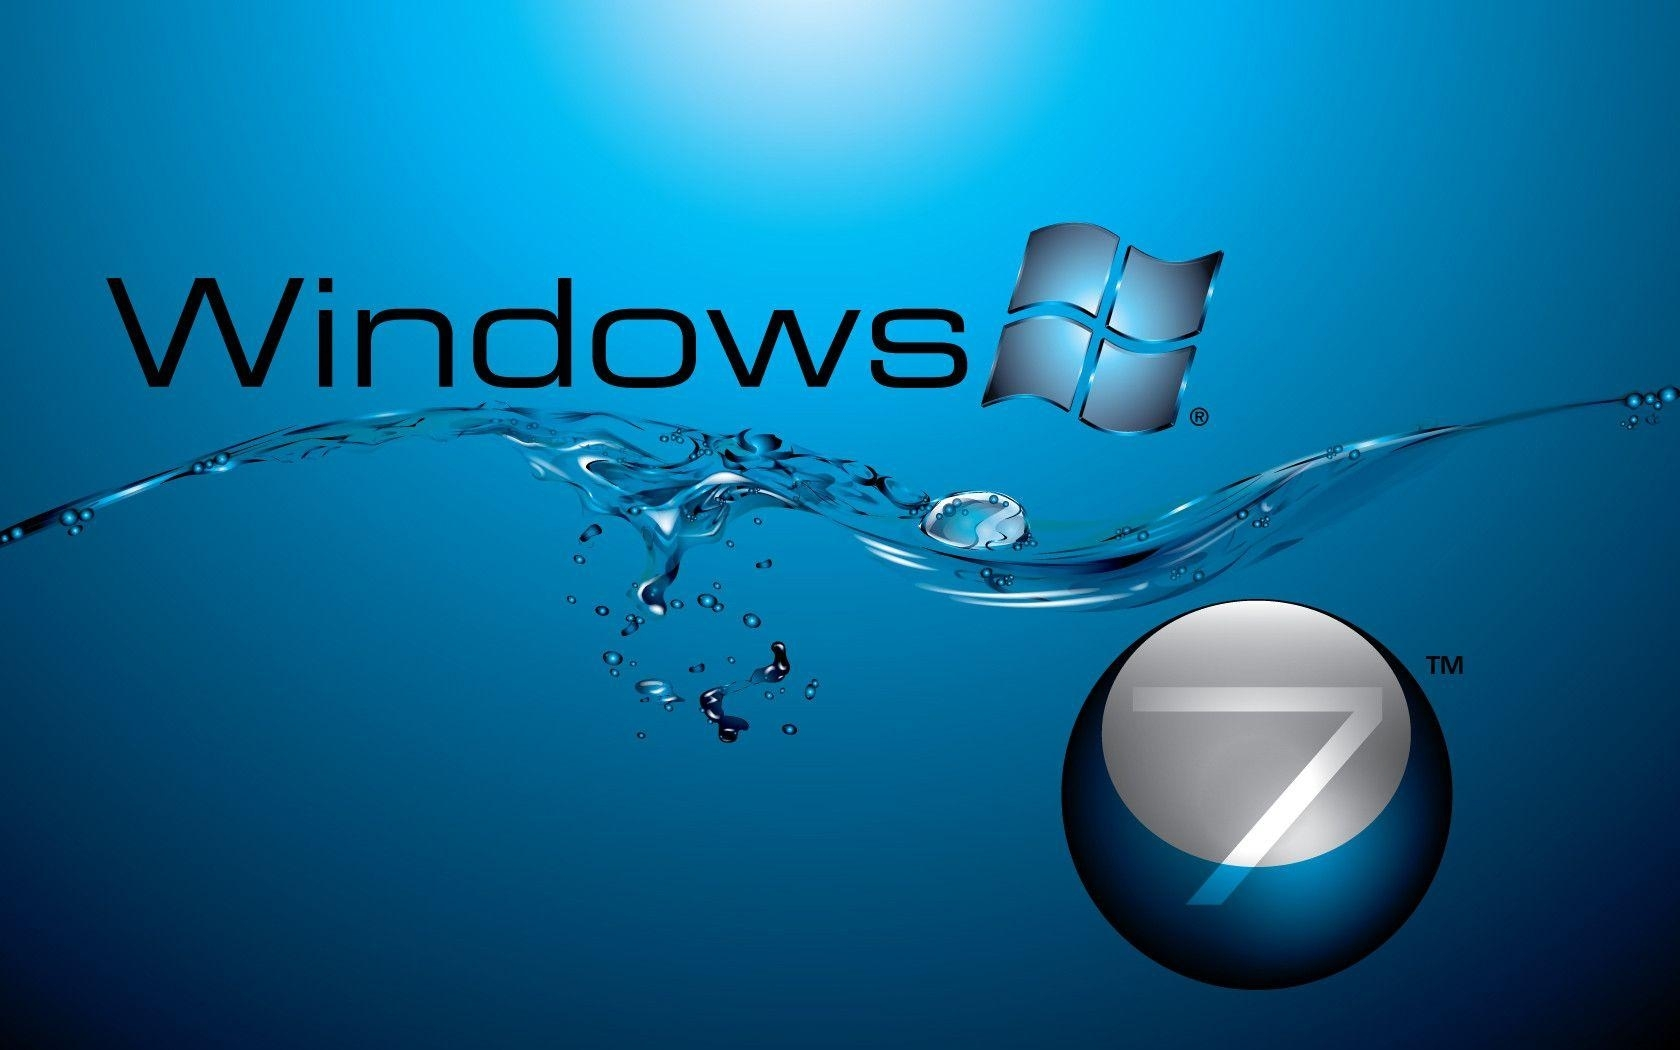 free hd wallpapers for windows 7 - wallpaper cave